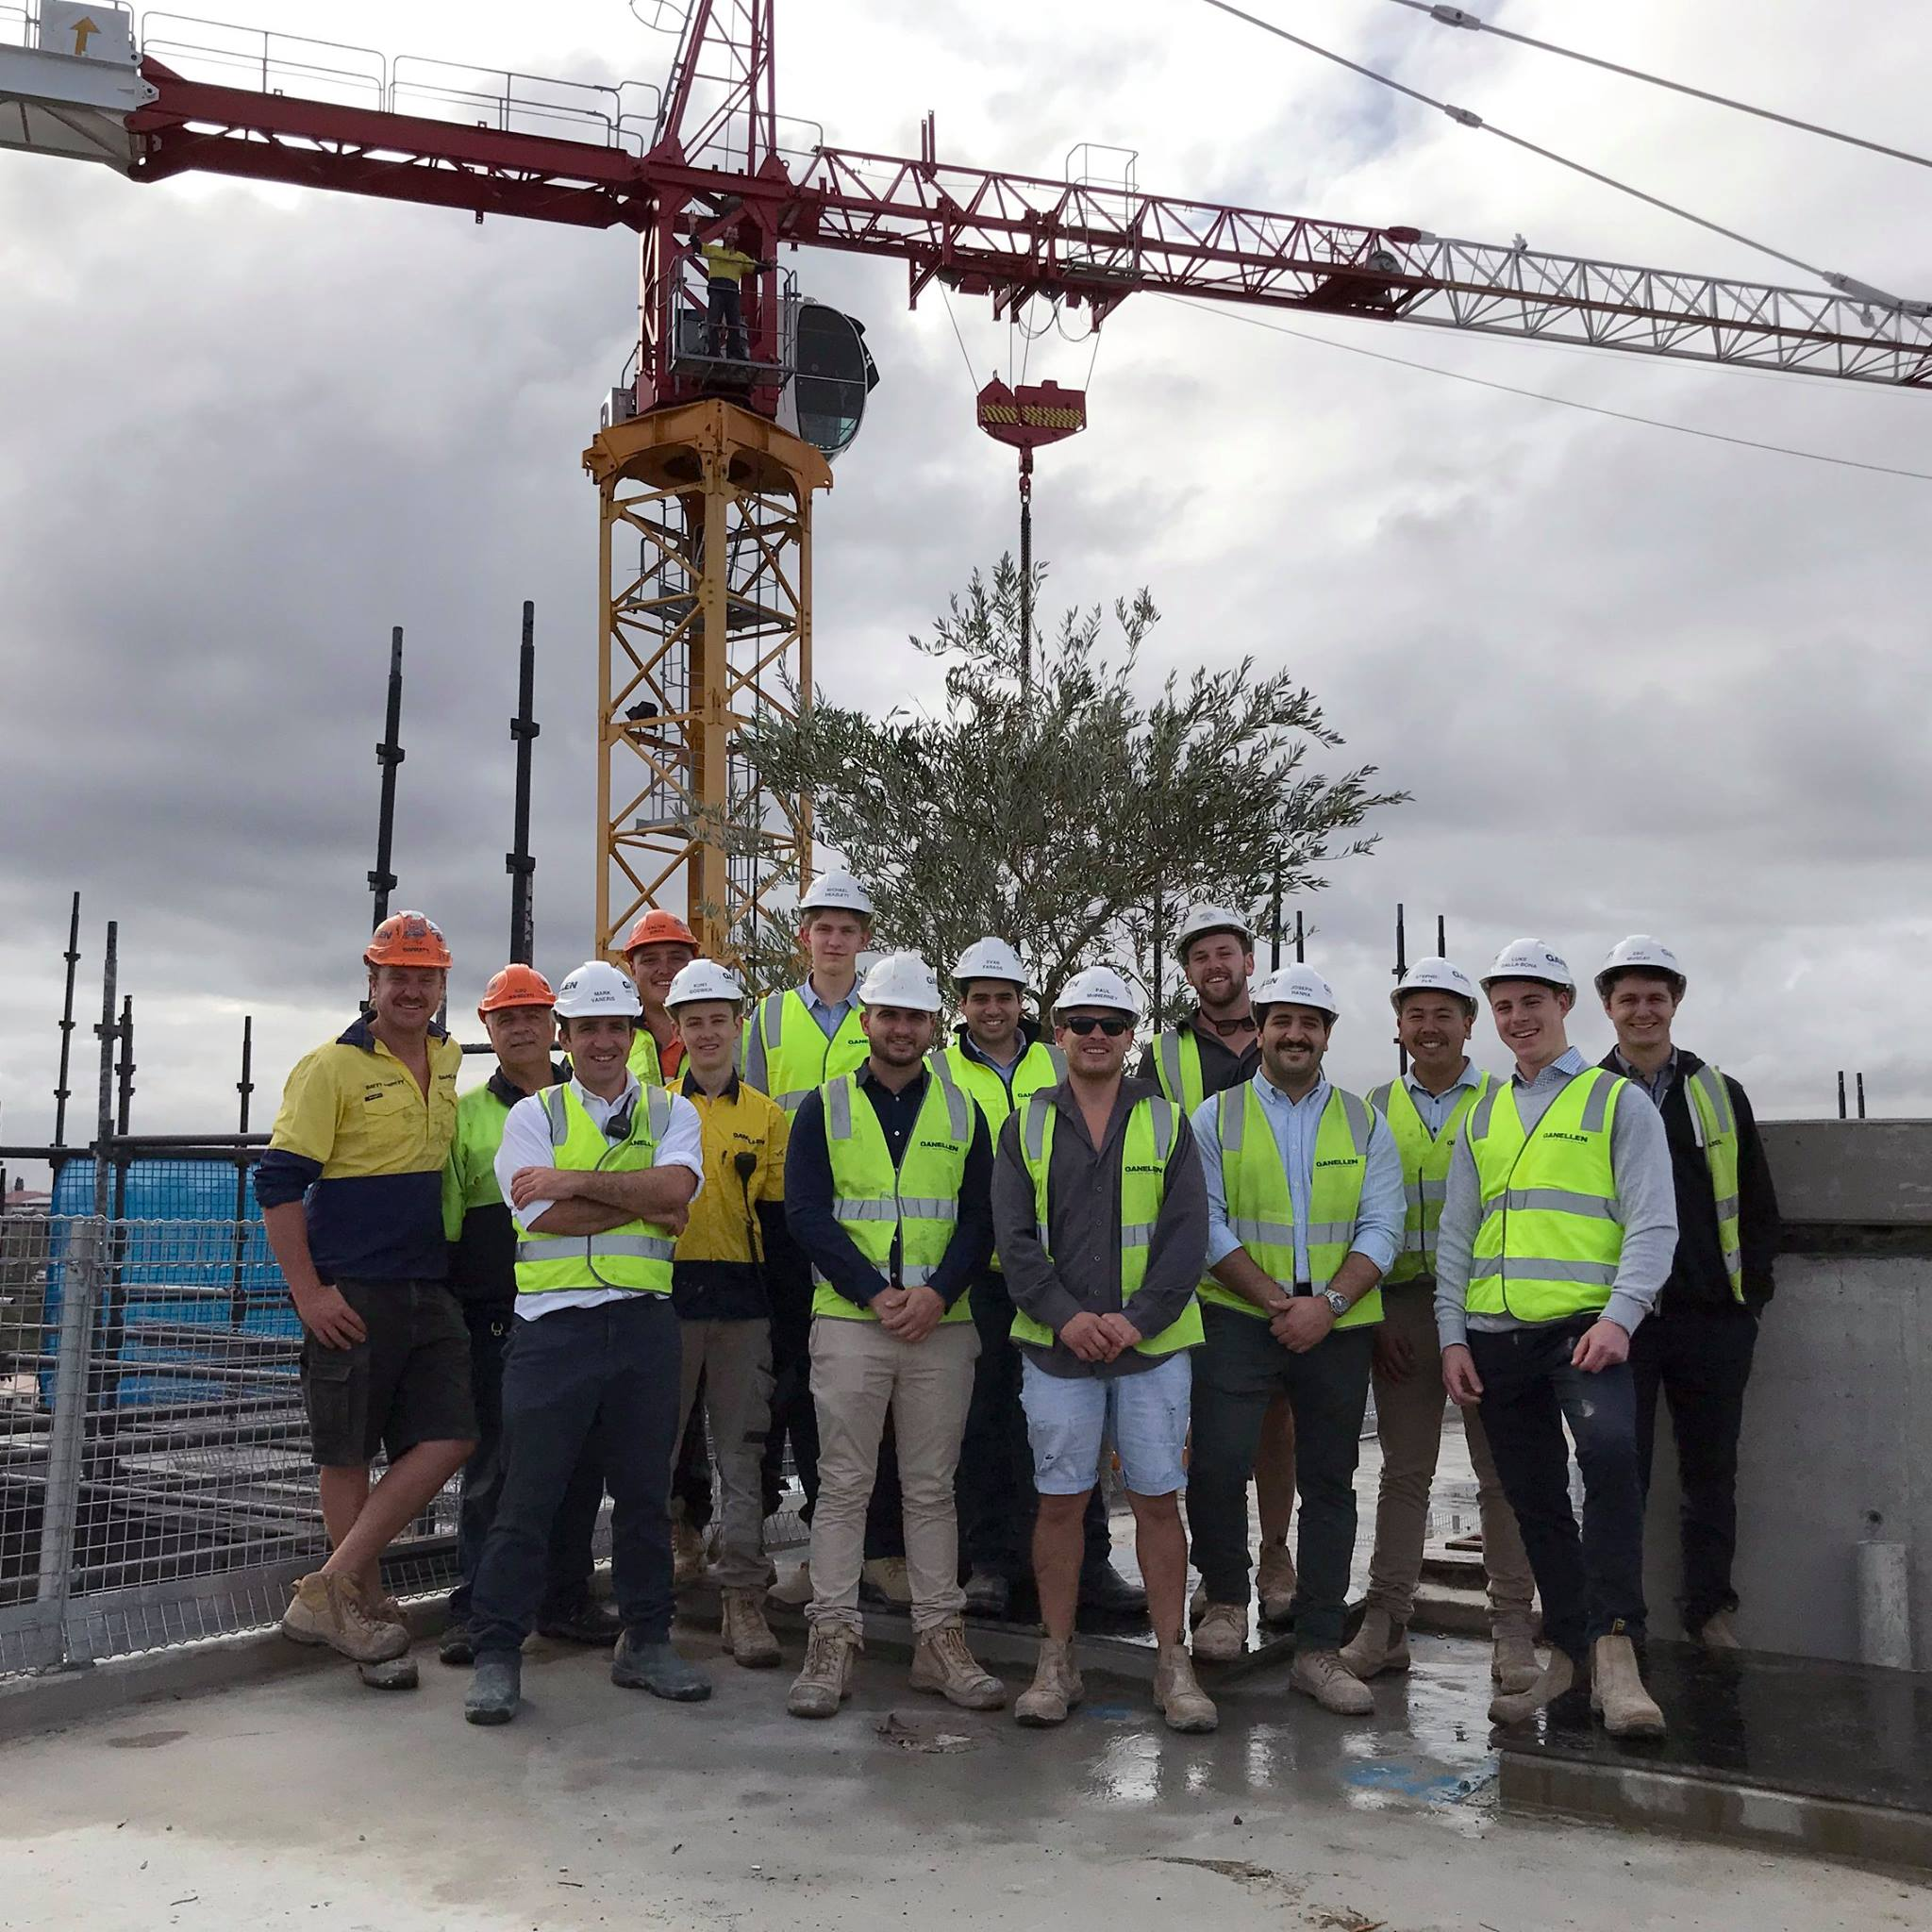 Our 'Highgardens' building in Eastwood has been topped off!